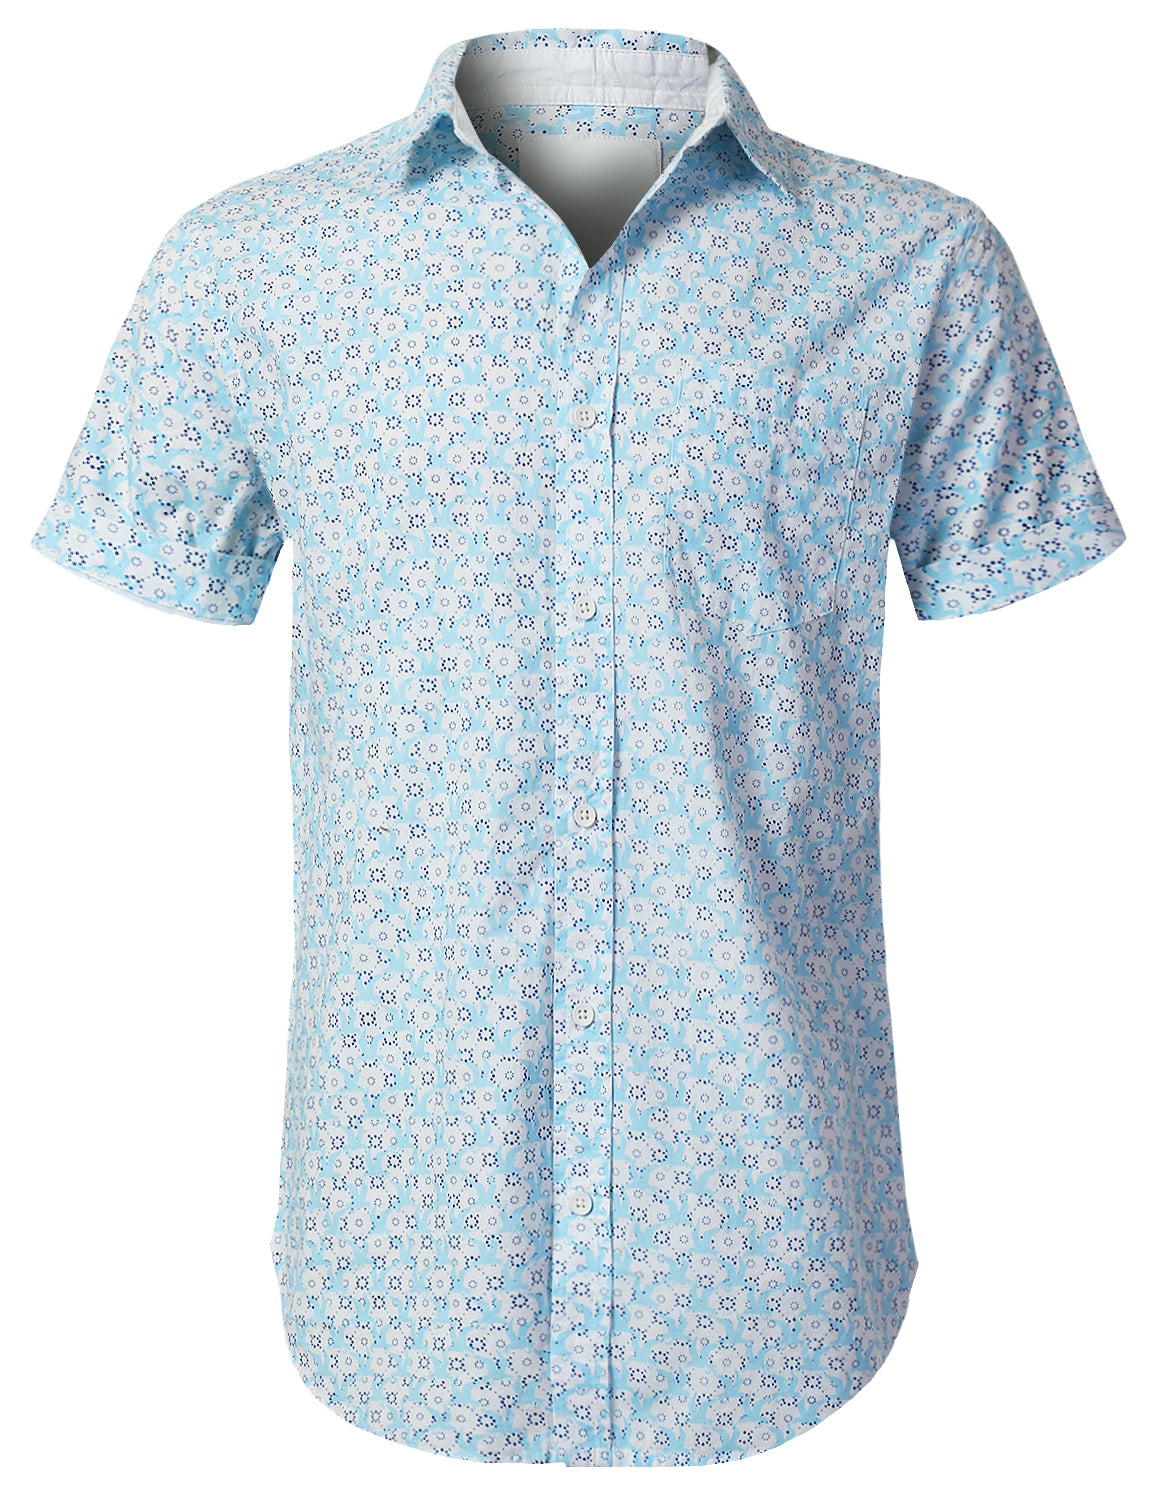 BLUE Patterned Graphic Button Down Shirt - URBANCREWS